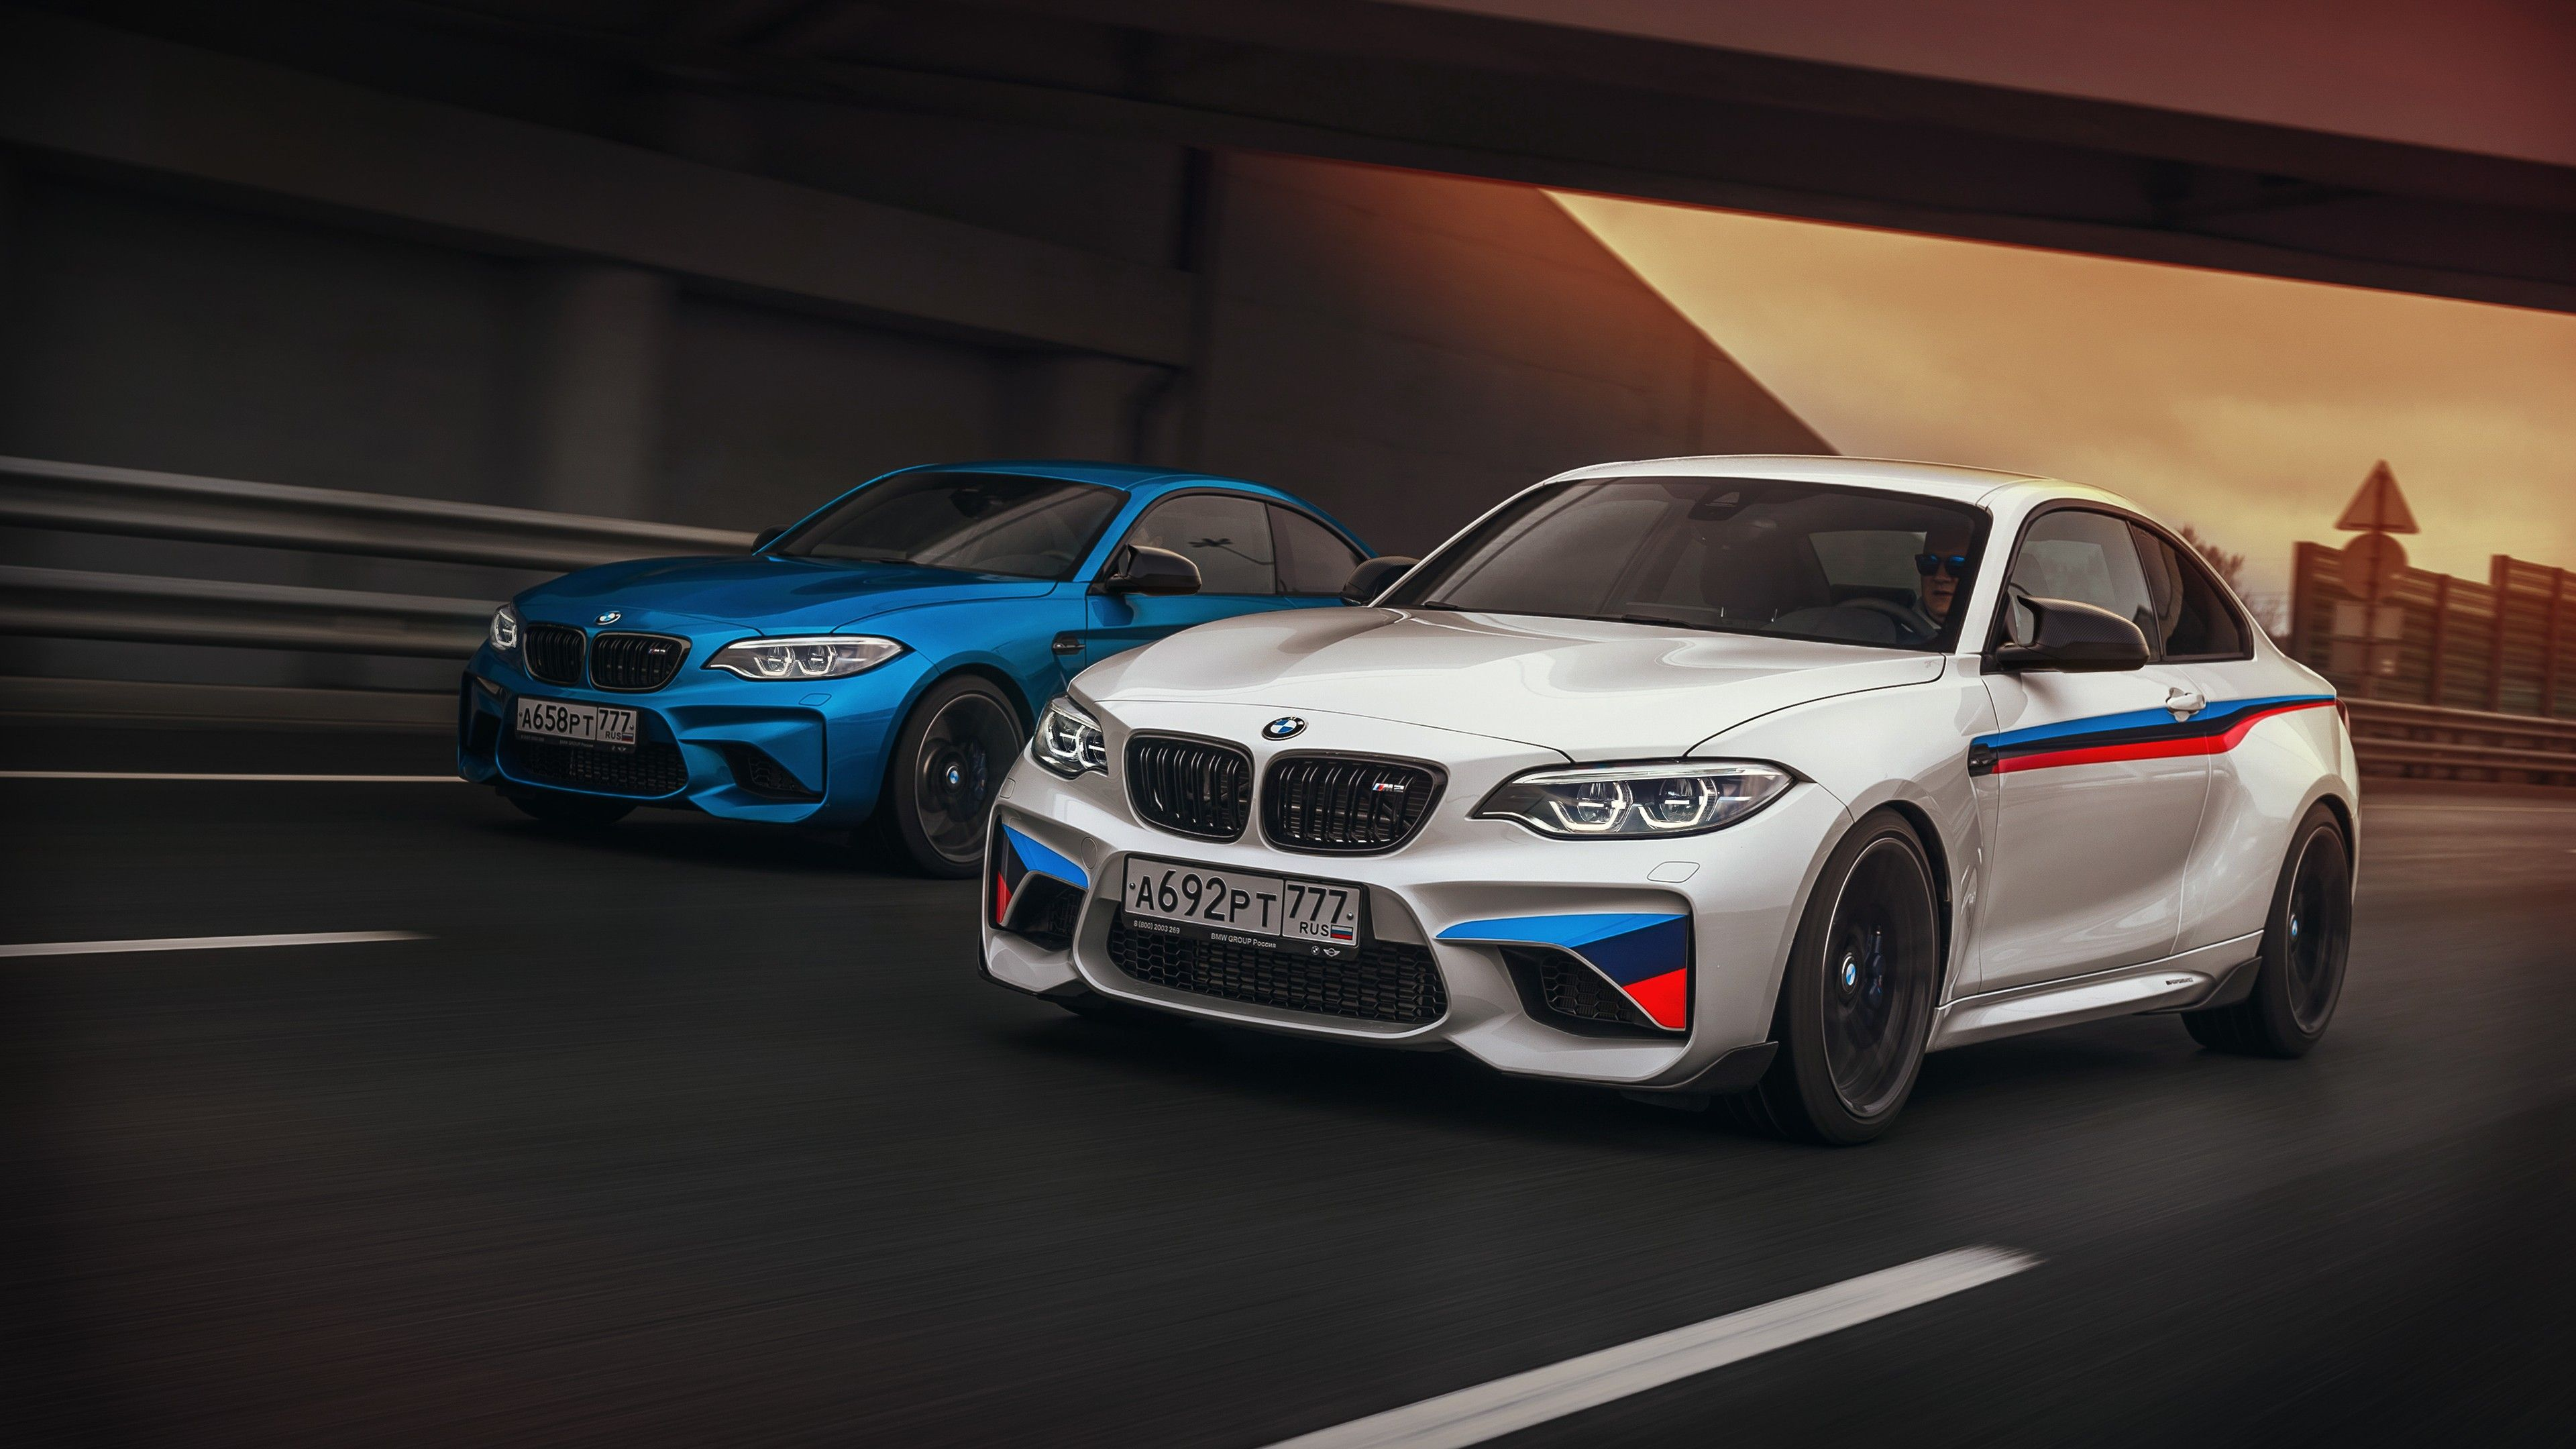 4K BMW Wallpapers - Top Free 4K BMW Backgrounds ...